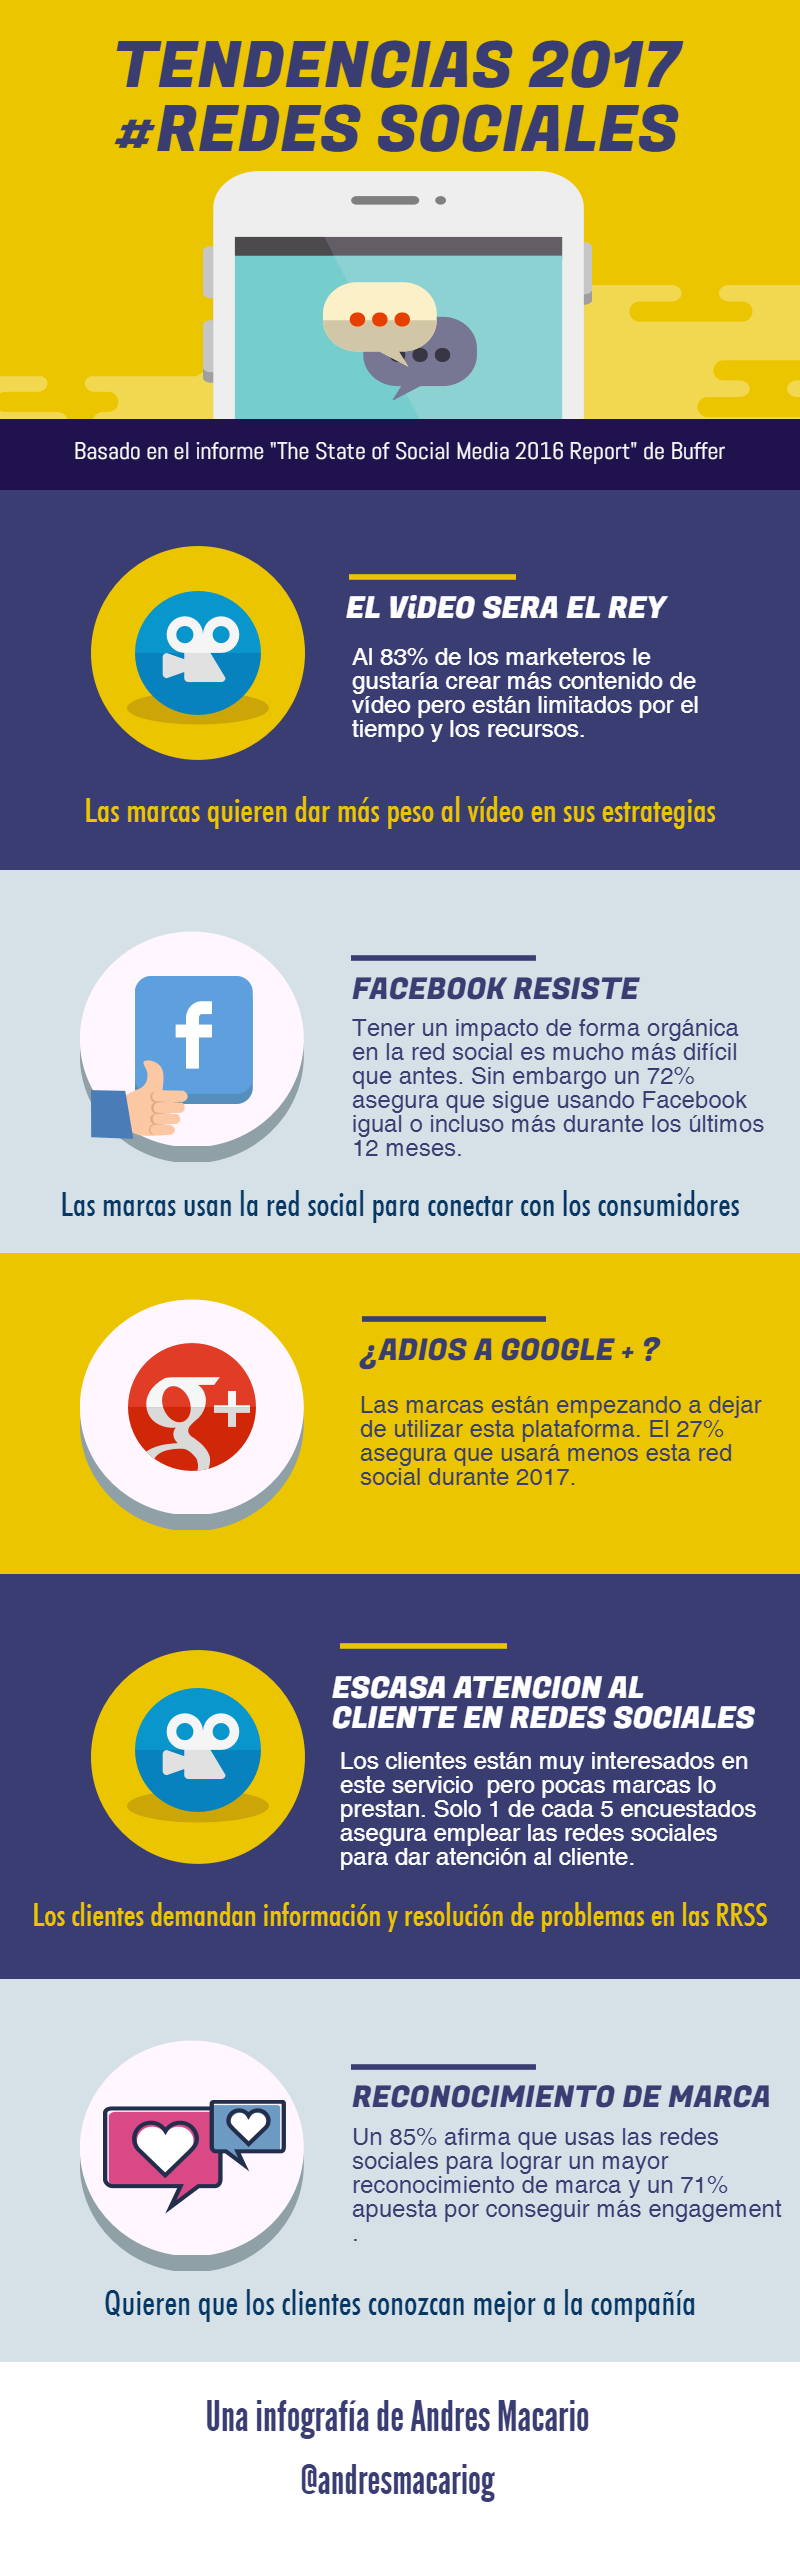 Social Media Marketing - Tendencias Redes Sociales 2017